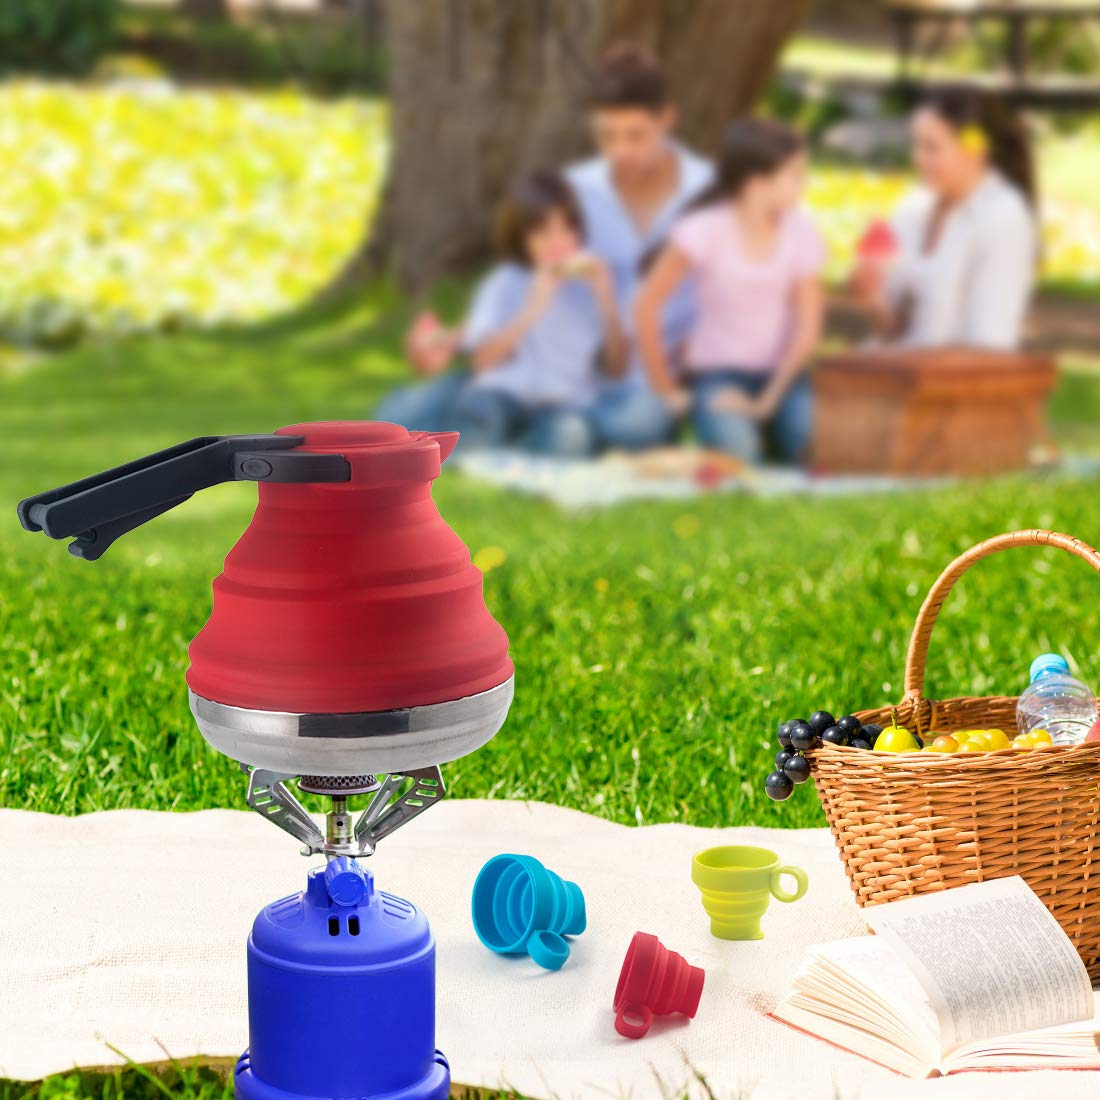 Louty Outdoor Portable Collapsible Silicone Tea Kettle for Home Travel Camping with Three Silicone Collapsible Tea Cups